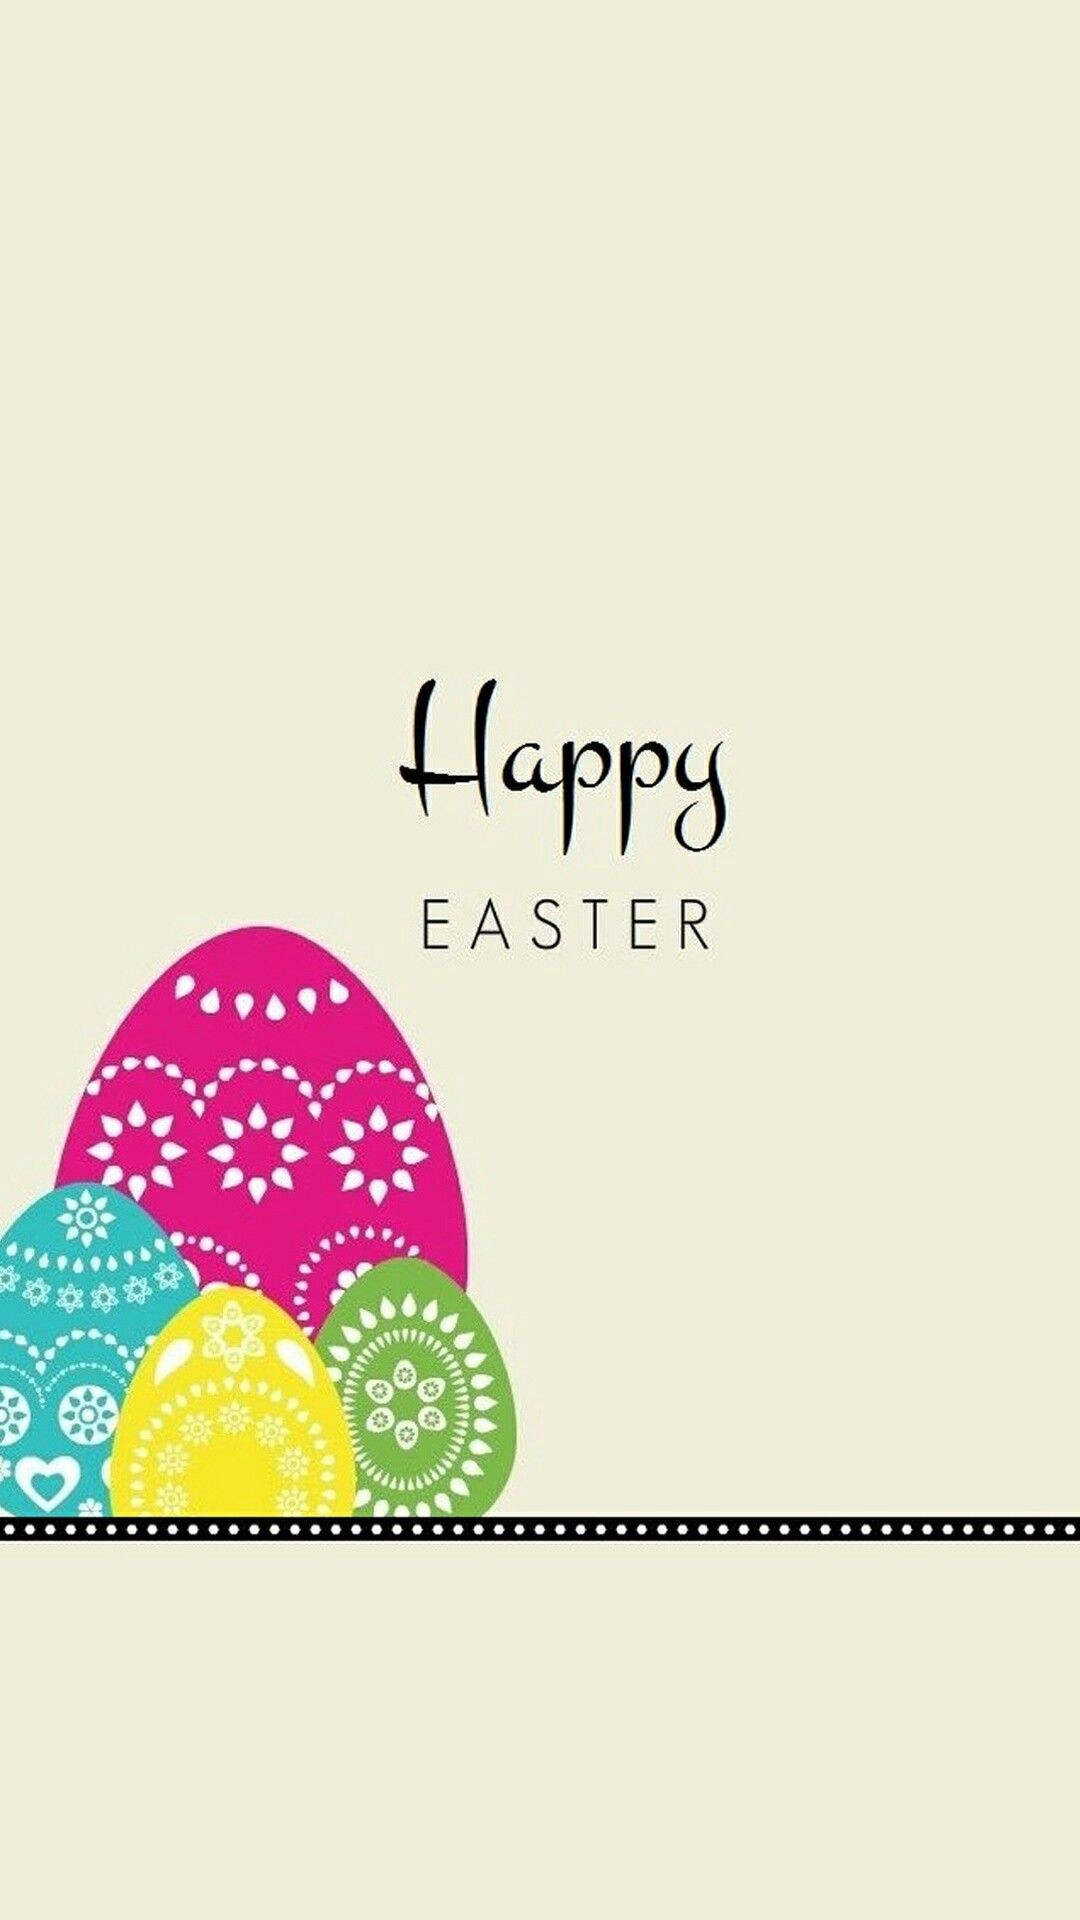 Pin by Bee on Happy Easter Pinterest